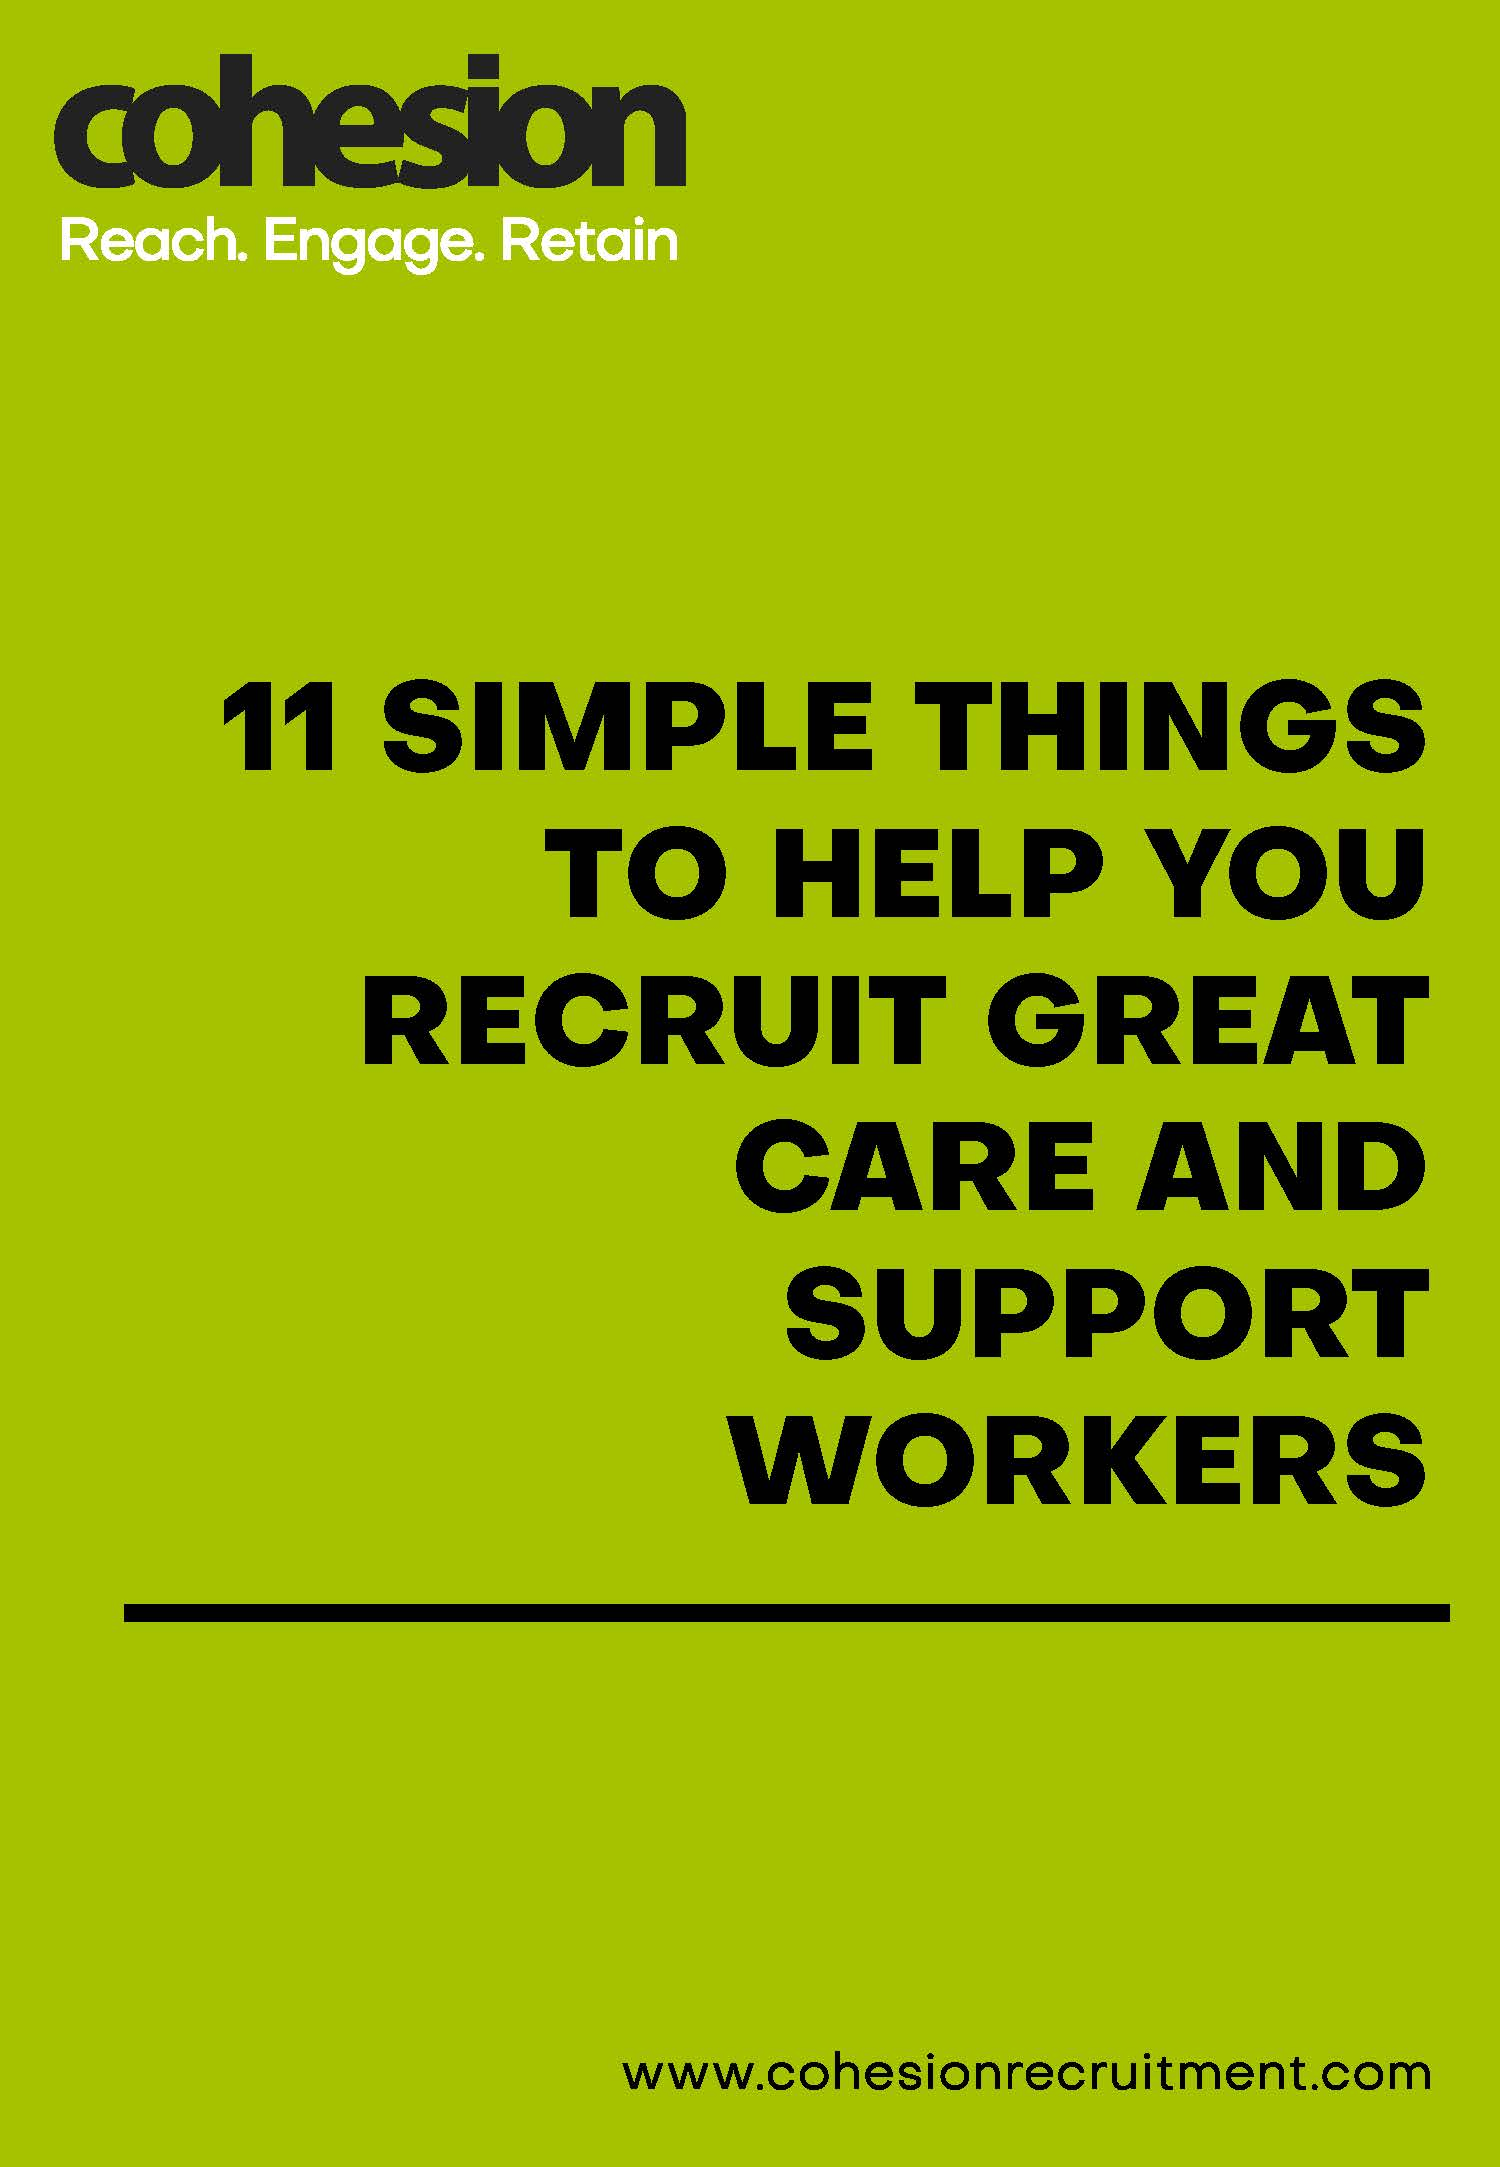 11 Ways to Recruit Great Care and Support Workers